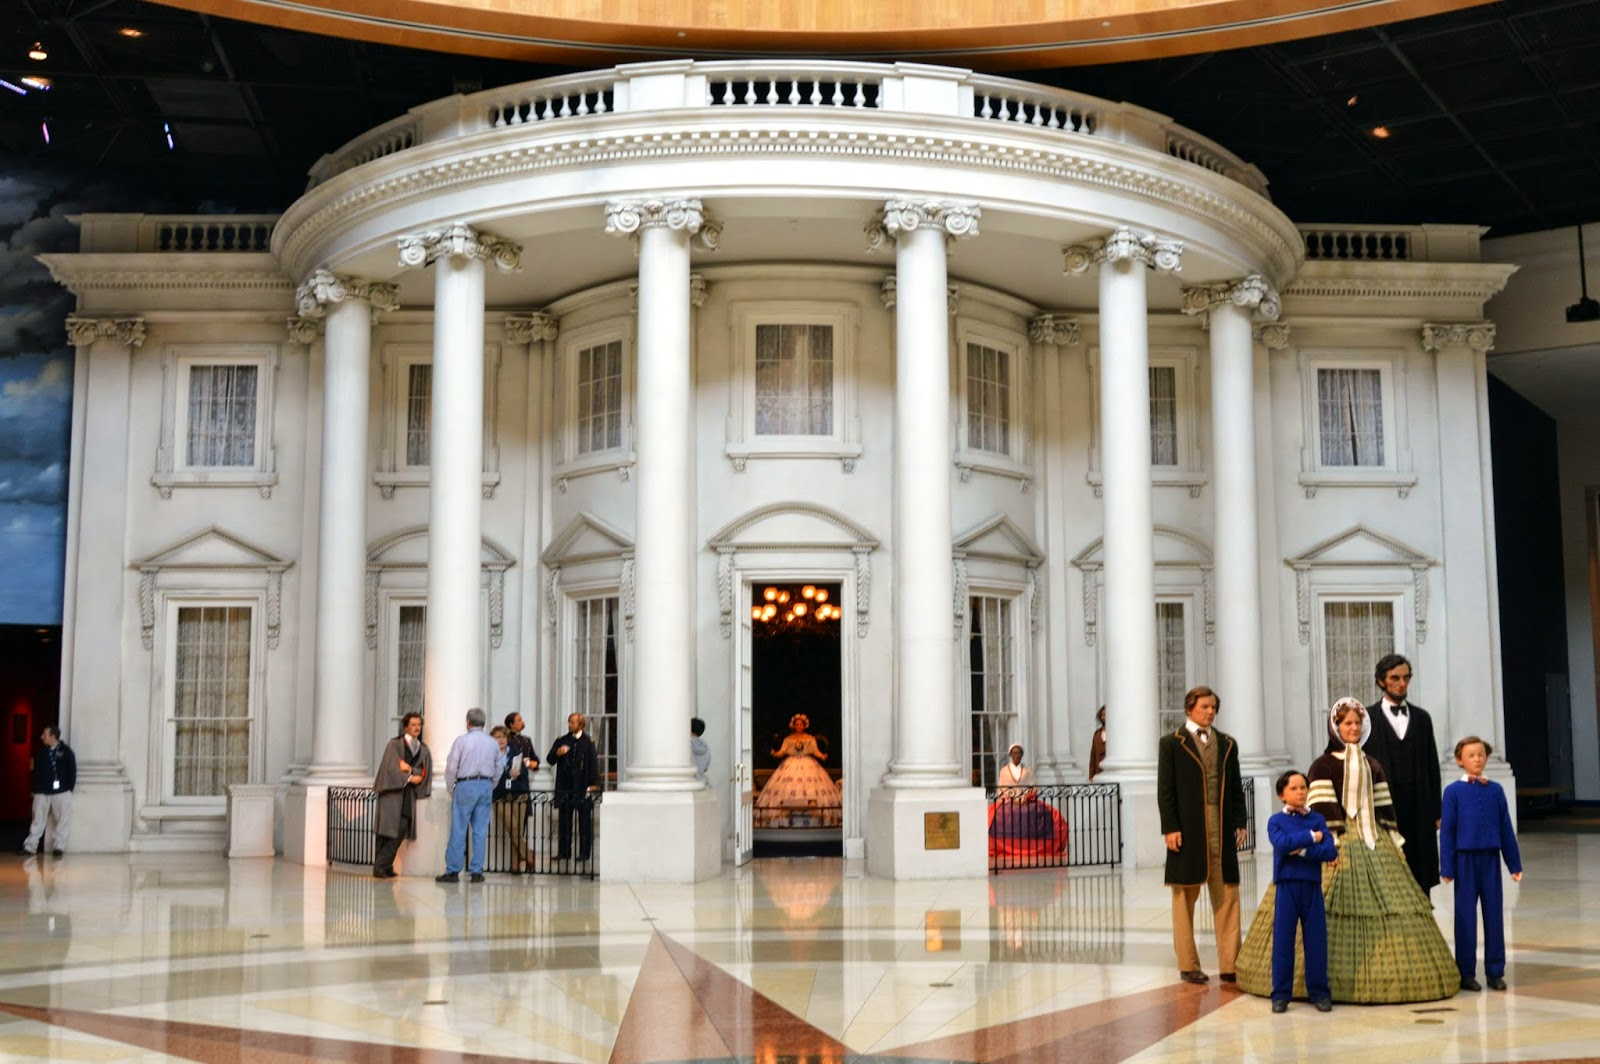 Illinois, Springfield Illinois, Springfield, Illinois State Capitol, Abraham Lincoln, Abraham Lincoln Museum, Abraham Lincoln Presidential Museum